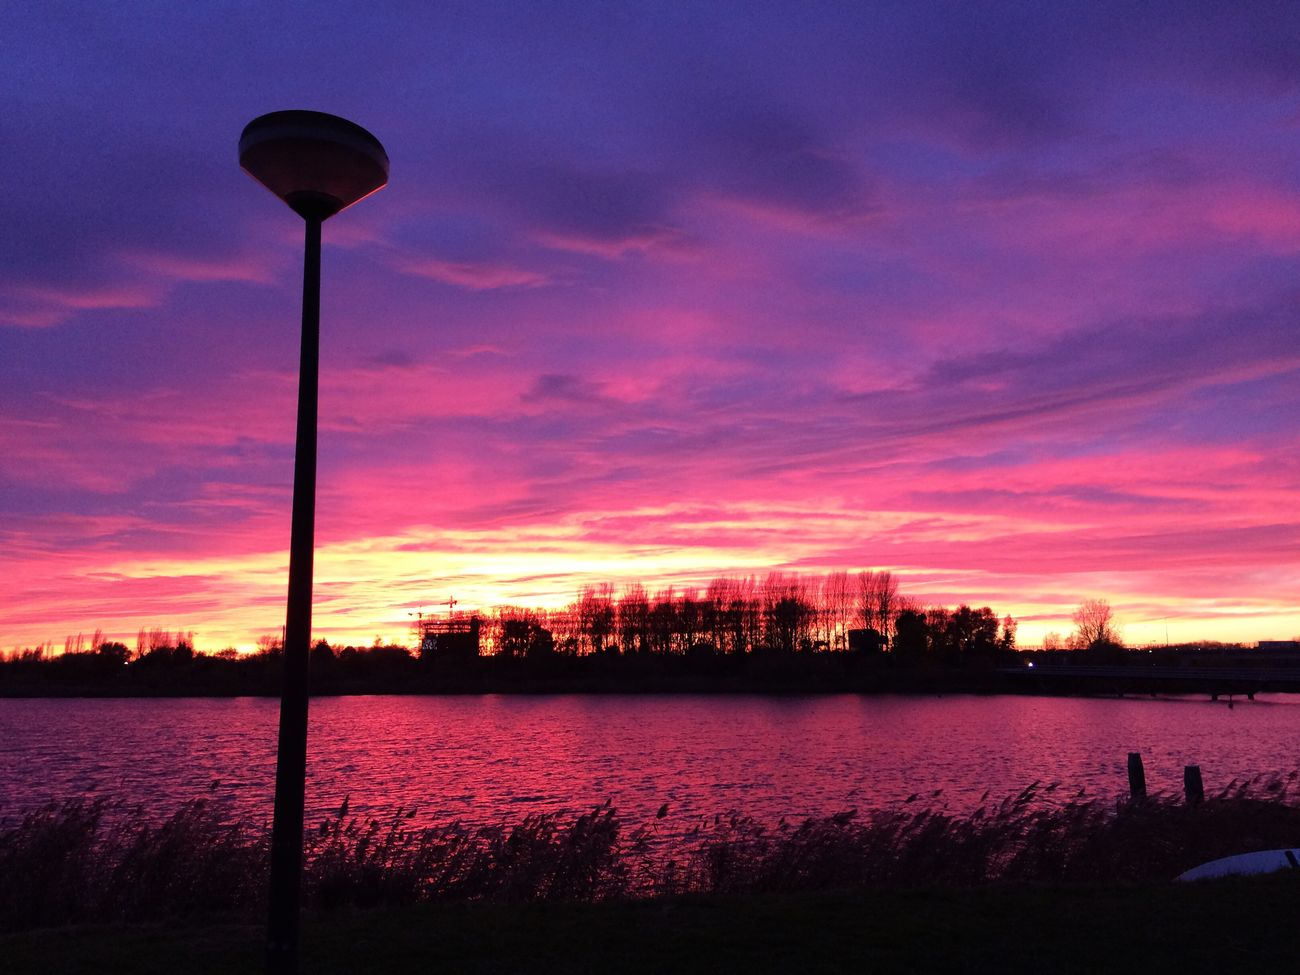 Sunset Sky Cloud - Sky Dusk No People Water Nature Scenics Illuminated Beauty In Nature Dramatic Sky City Silhouette Outdoors Architecture